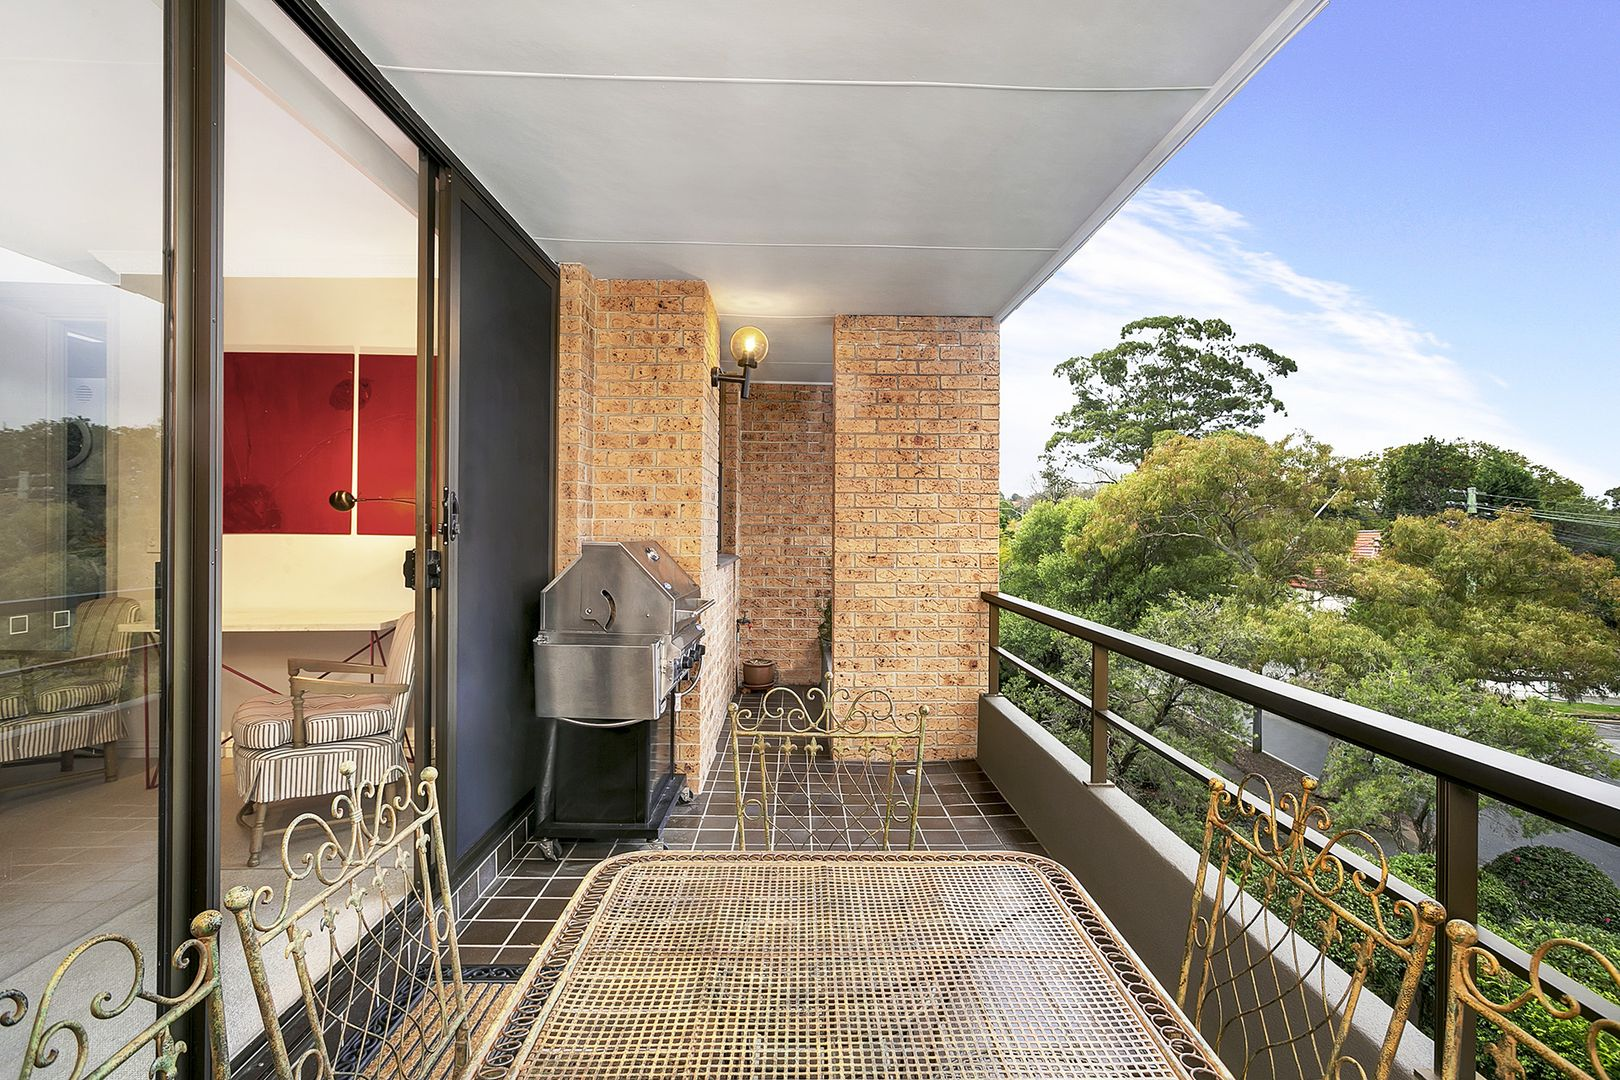 13/64-70 Spofforth Street, Cremorne NSW 2090, Image 1